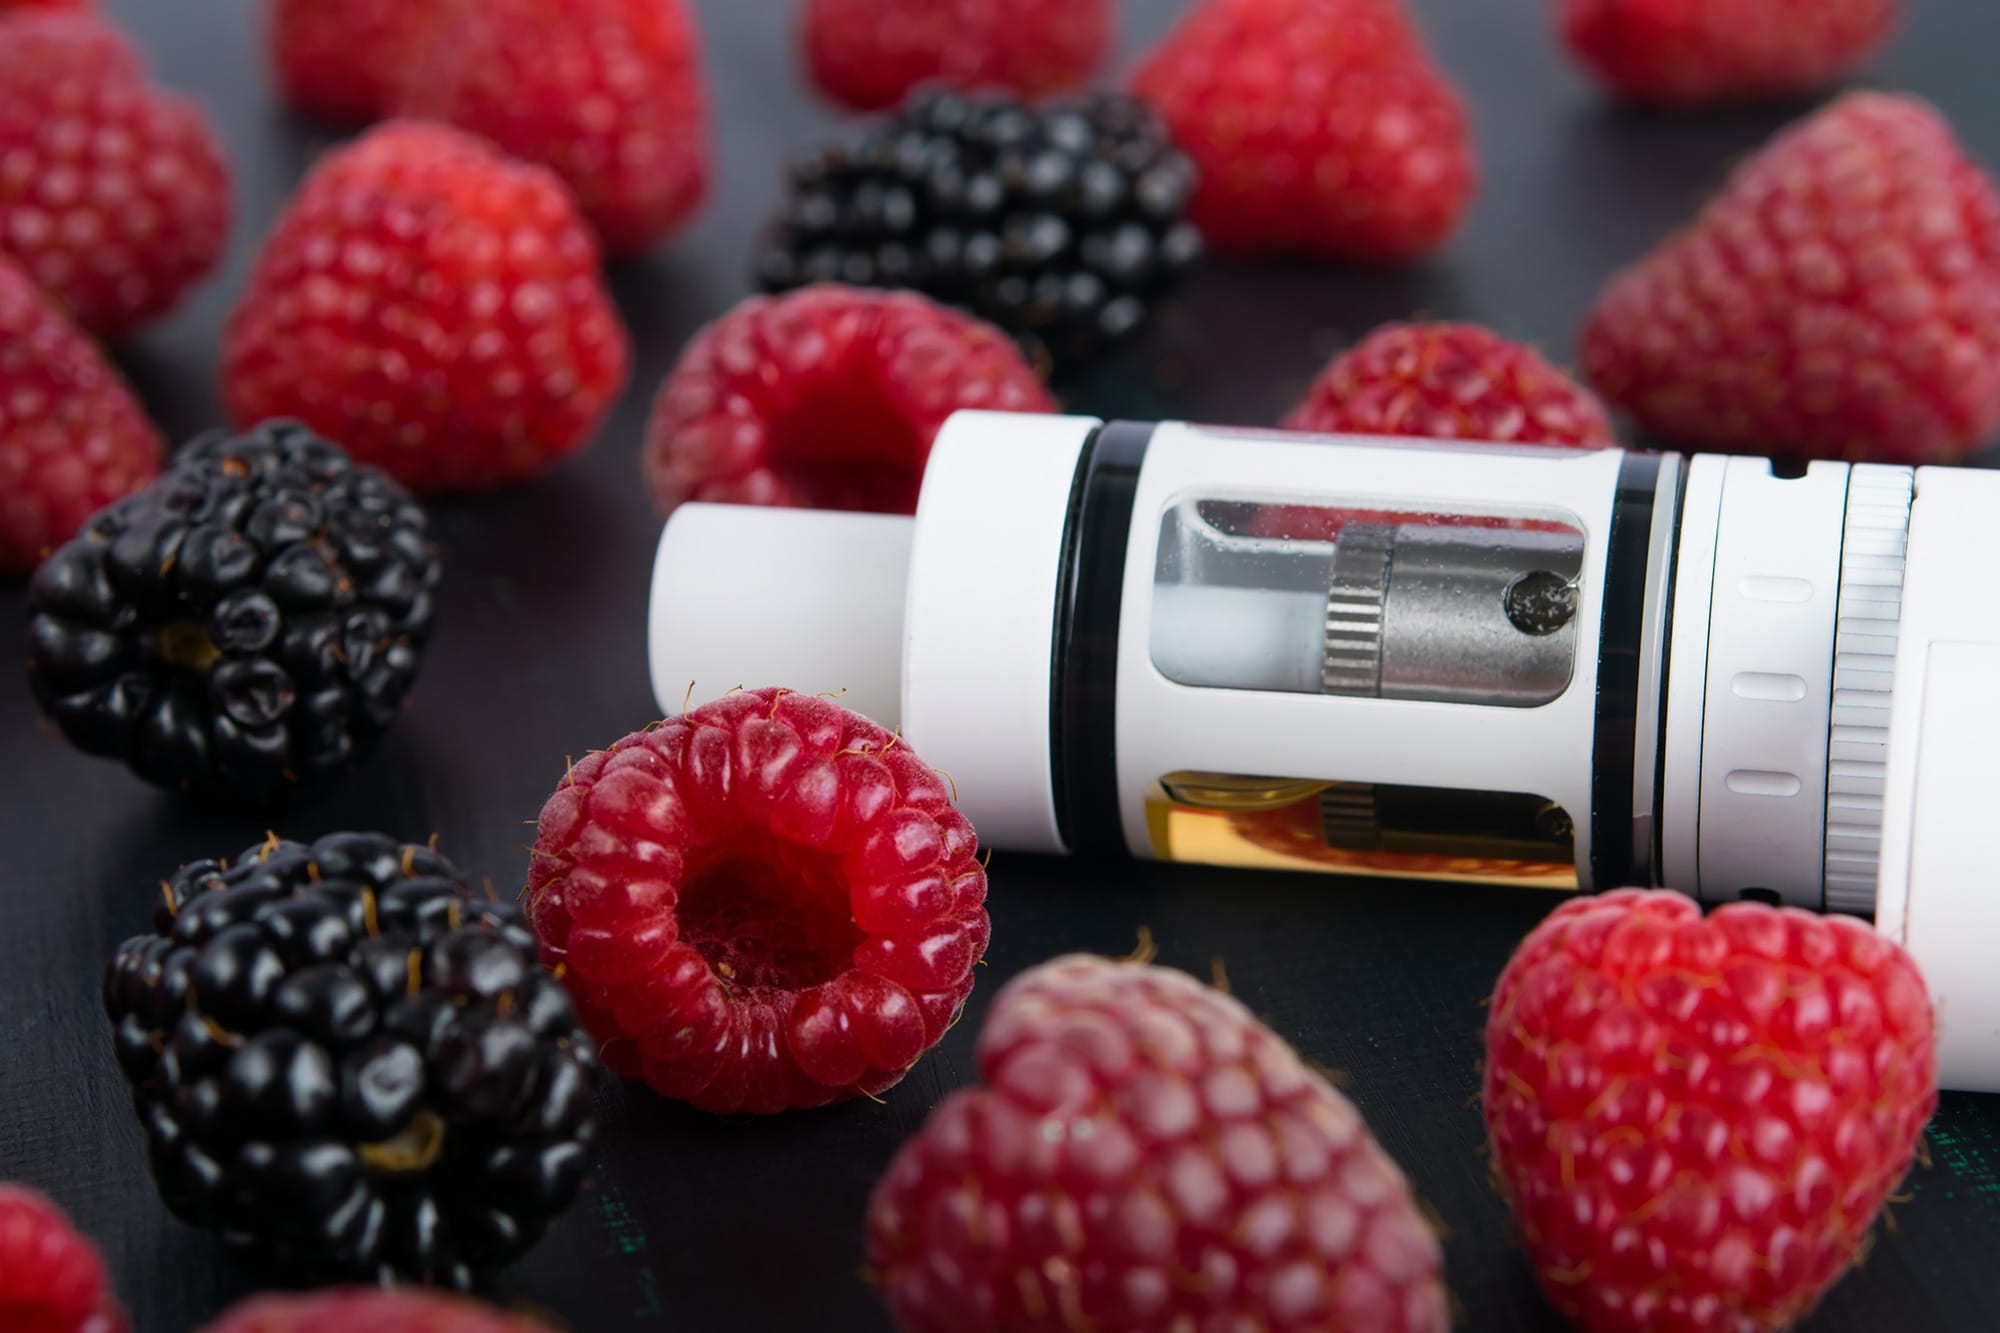 Liquid E-cigarette Flavorings Measurably Injure Lungs